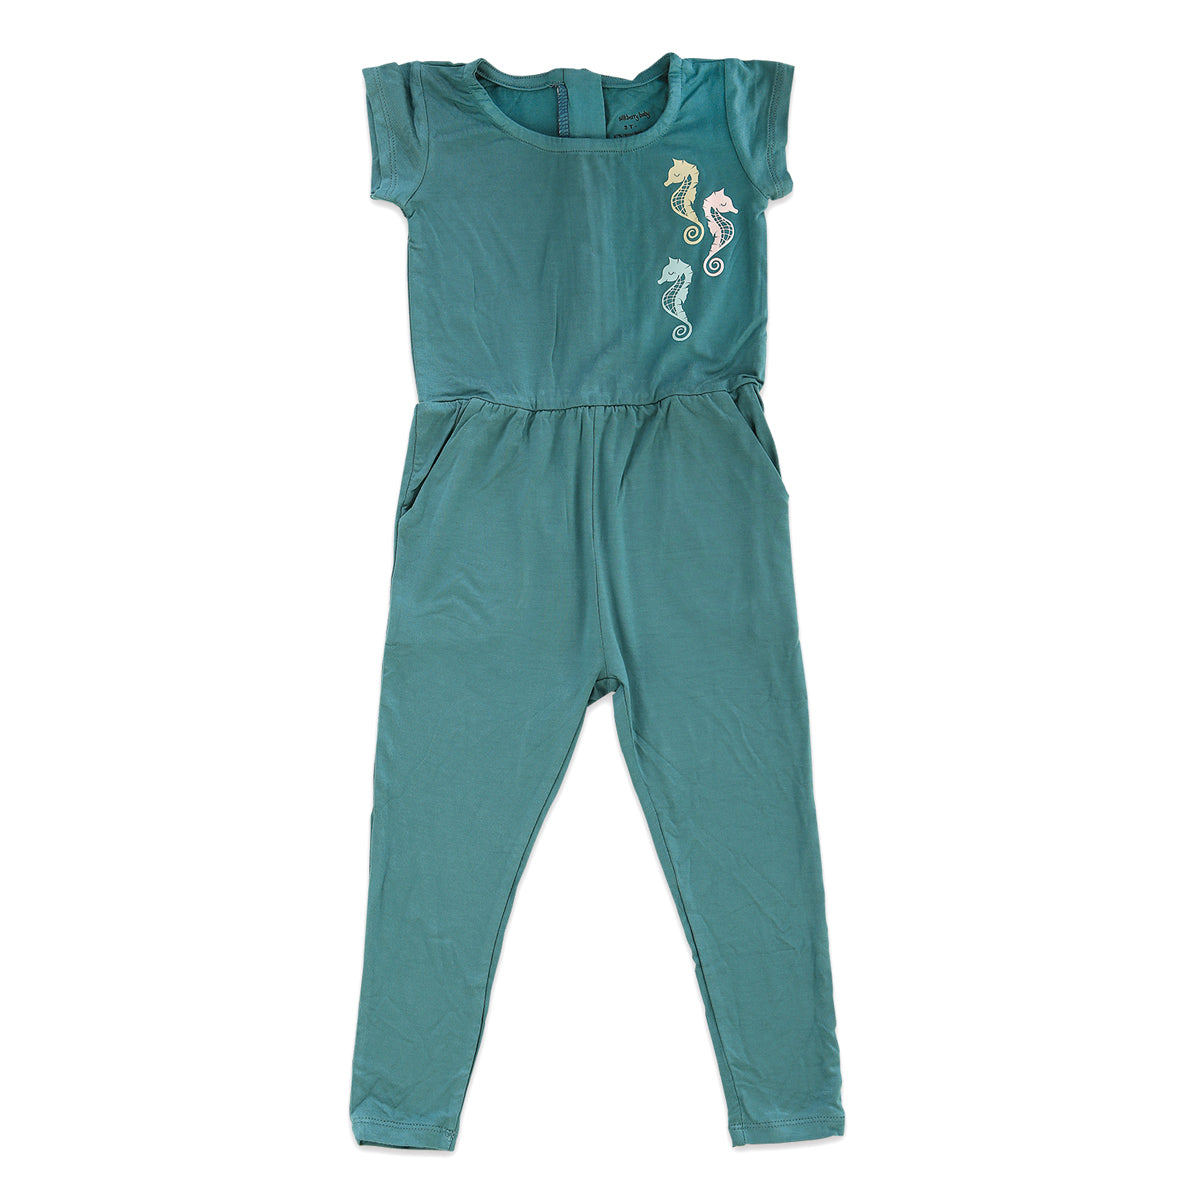 Bamboo Girl Coverall with Zipper (Stormy Teal)